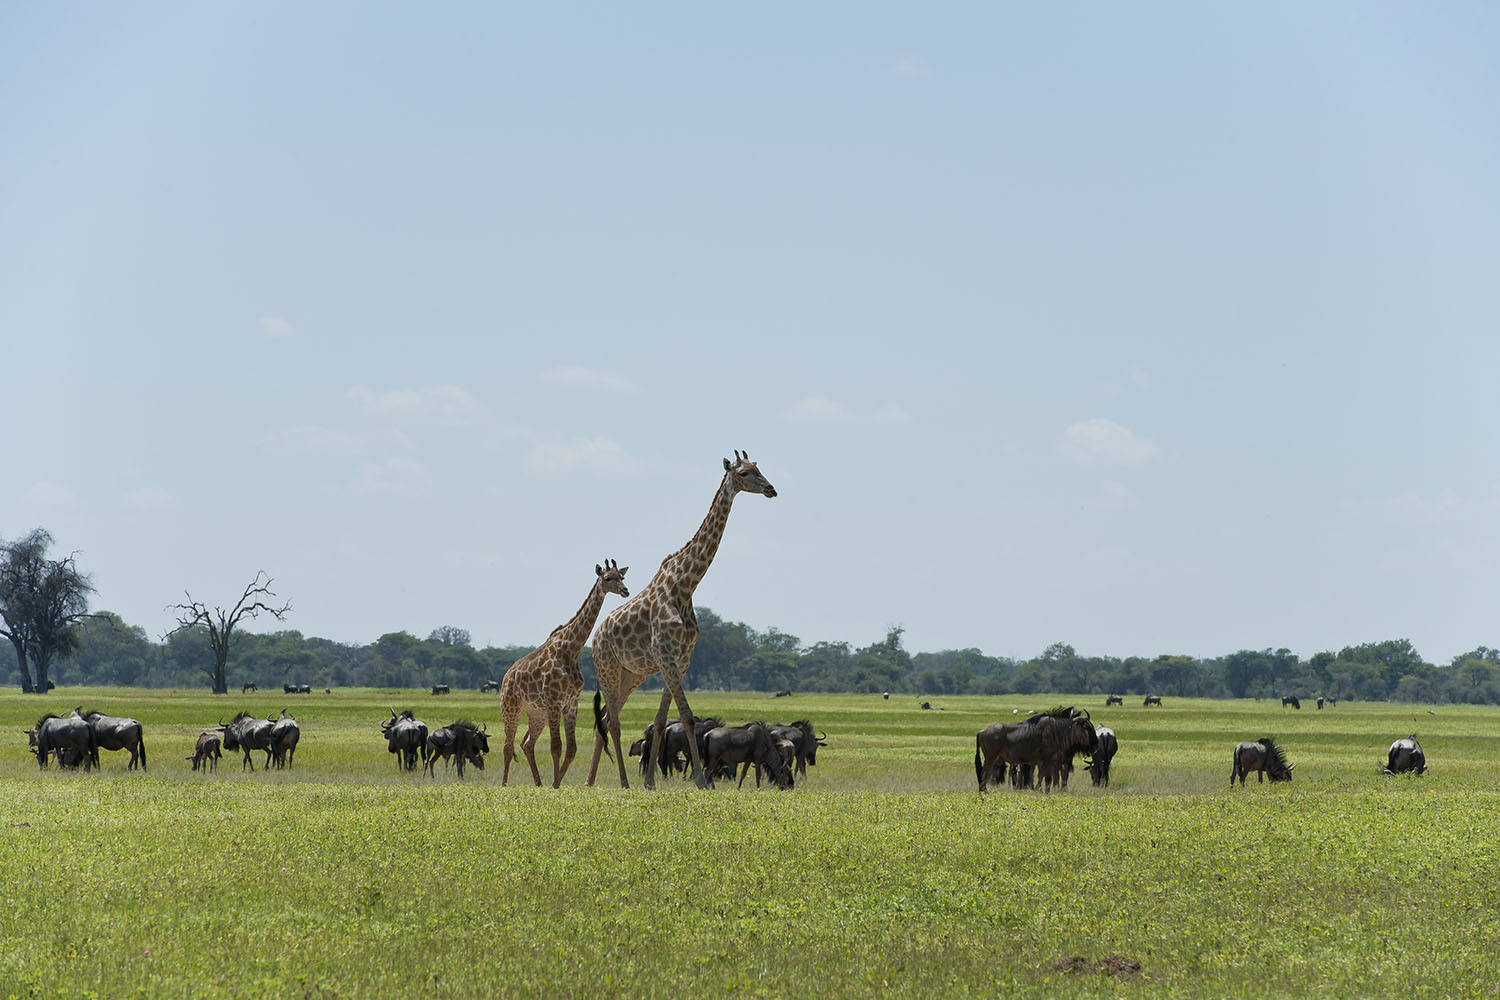 davisons camp hwange-national-park-zimbabwe-lodges-wilderness-activities-elephants-giraffe